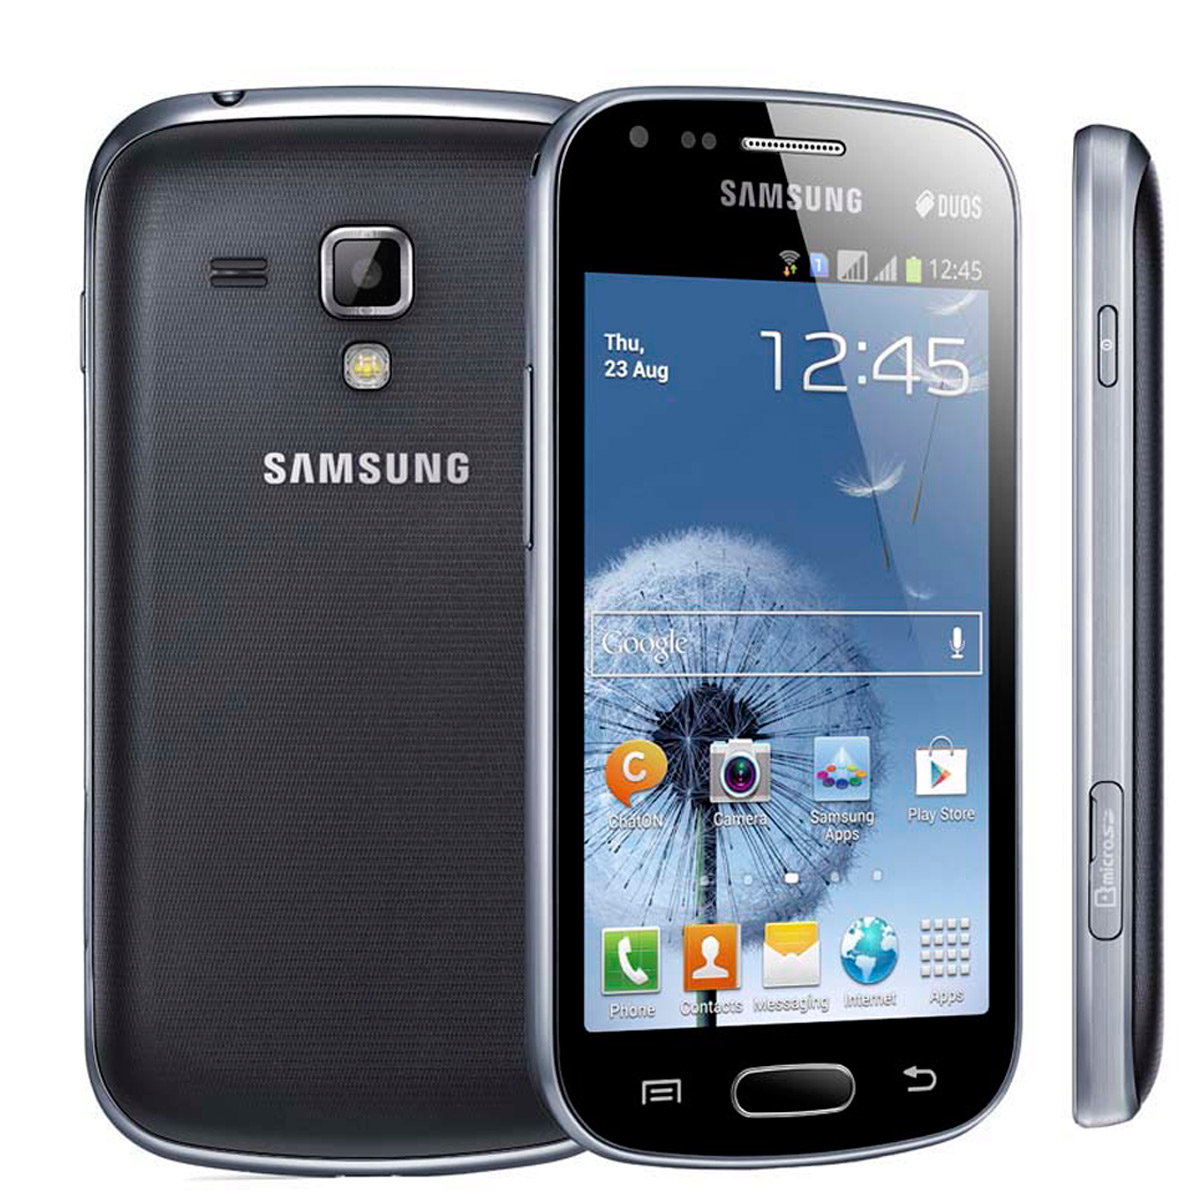 samsung galaxy s duos gt s7562l dual sim android phone. Black Bedroom Furniture Sets. Home Design Ideas